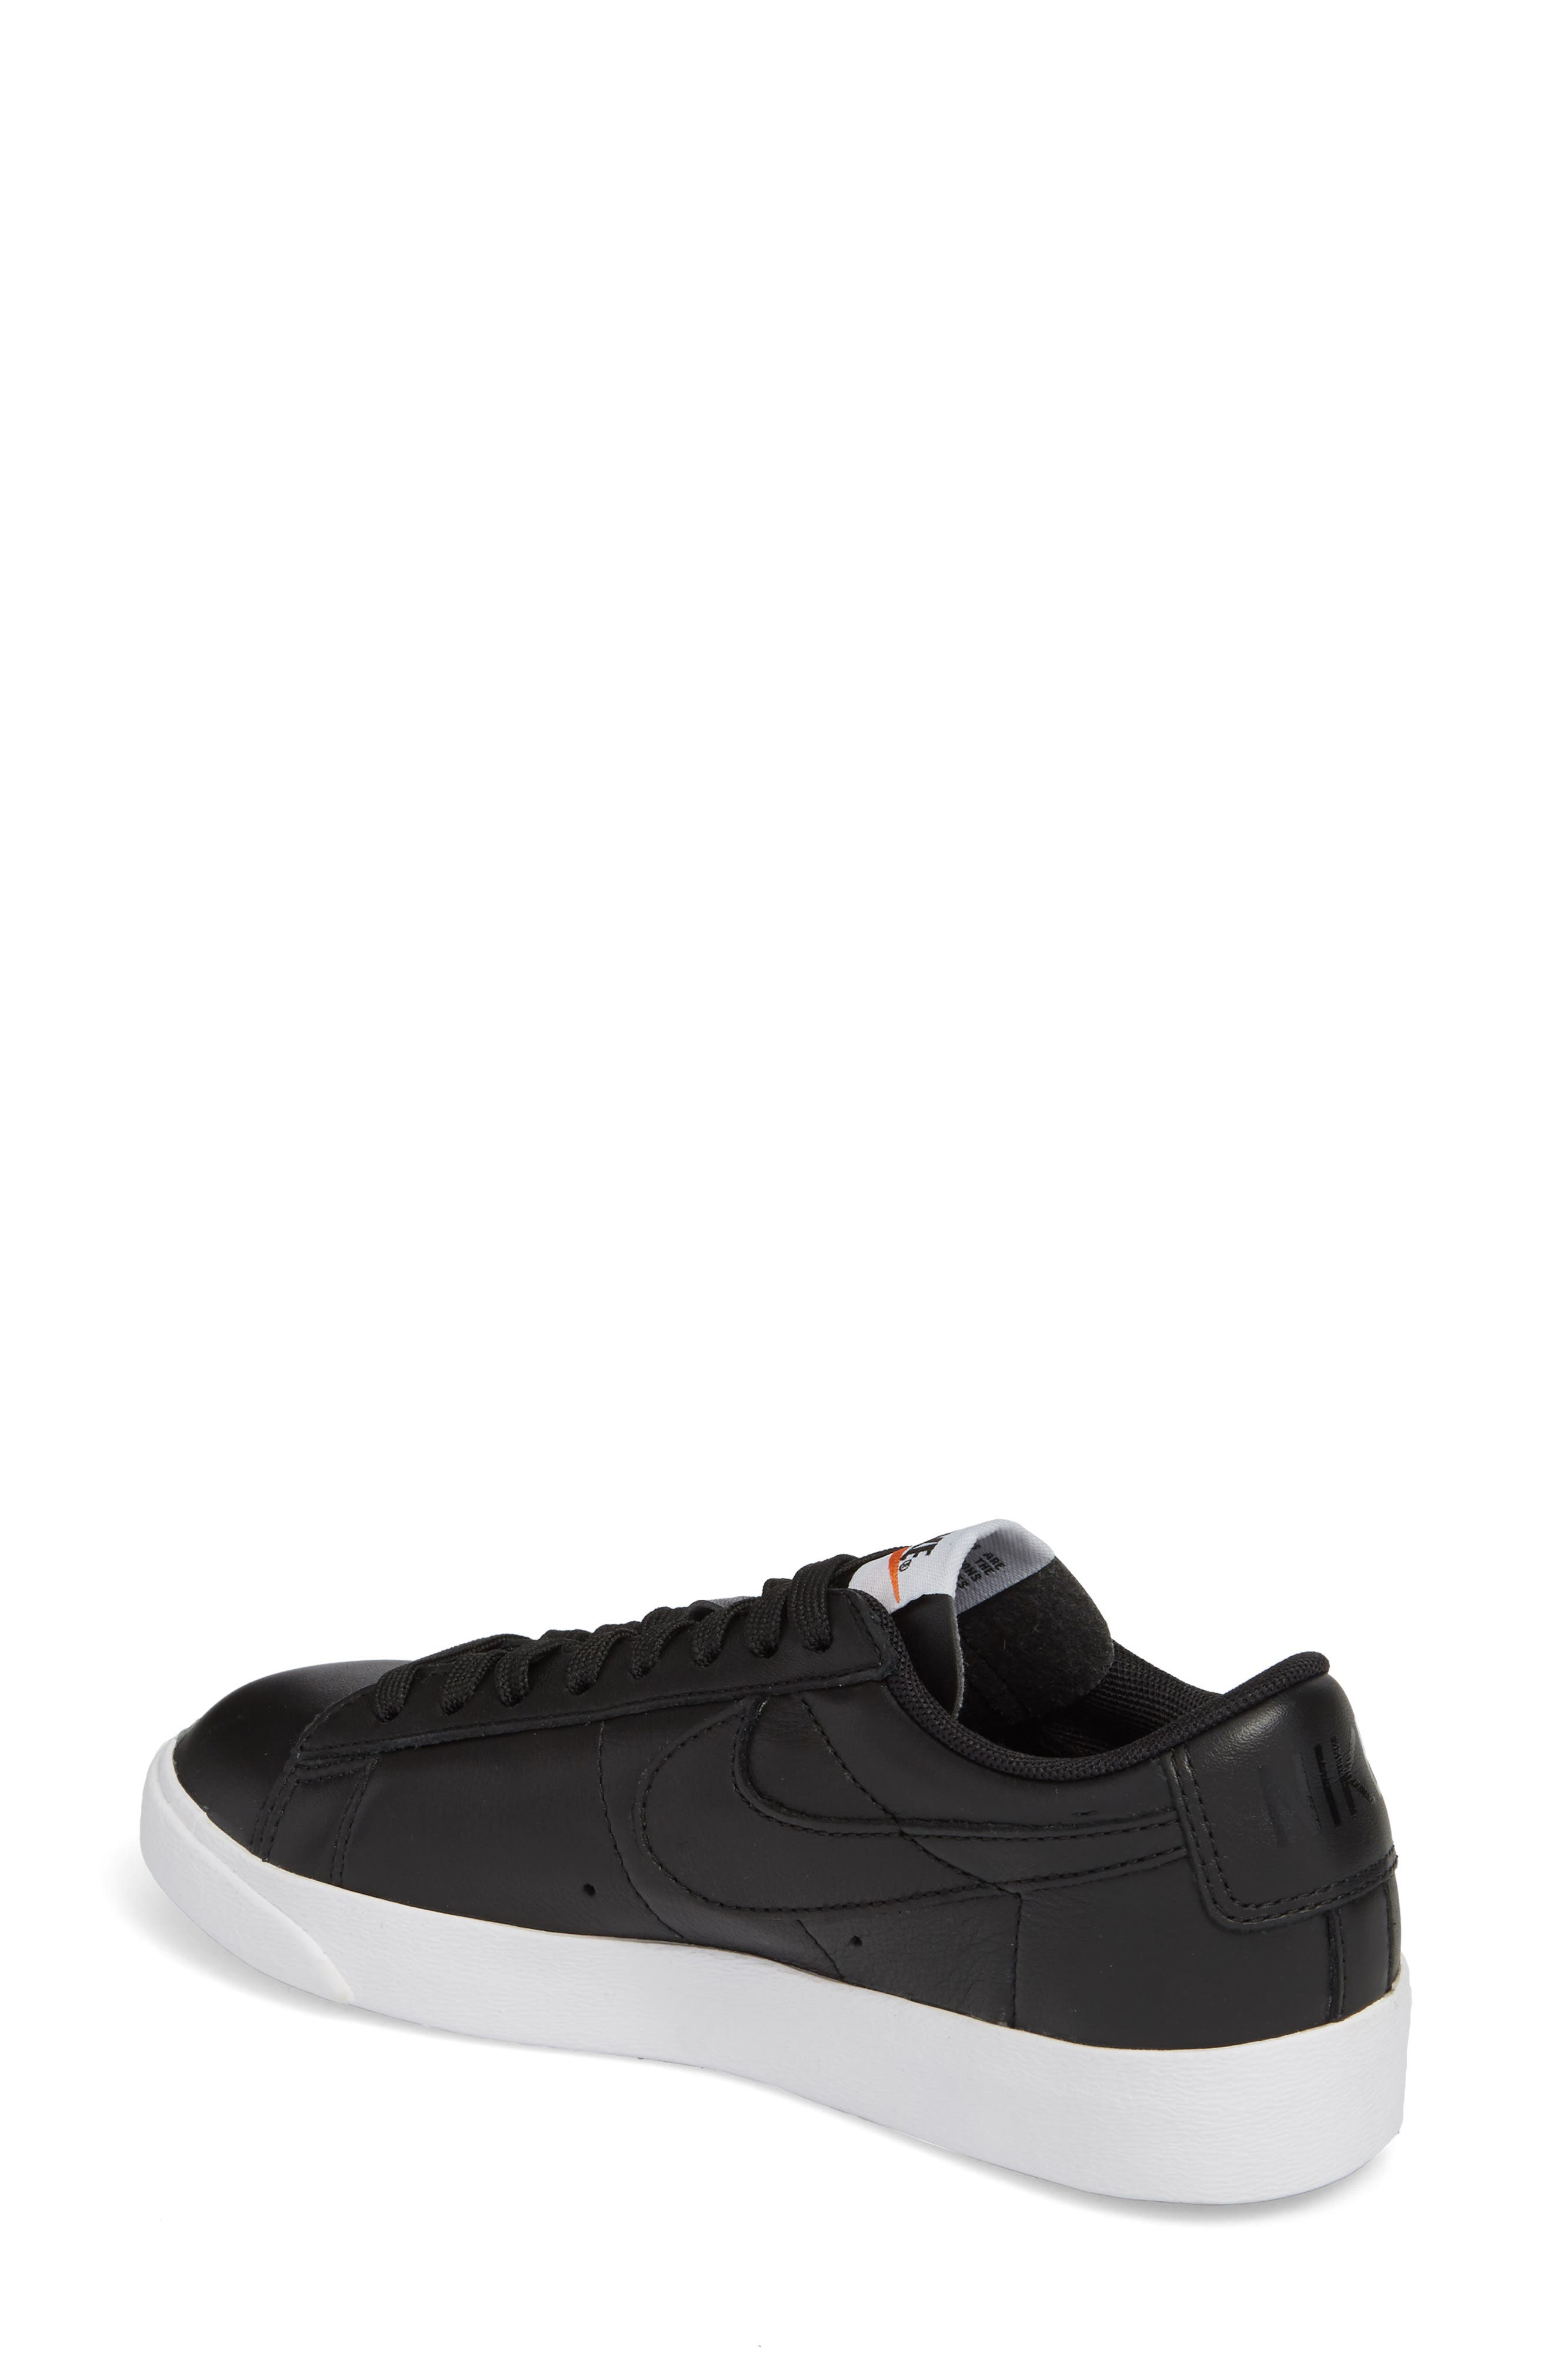 Blazer Low LE Basketball Shoe,                             Alternate thumbnail 2, color,                             Black/ Black/ White